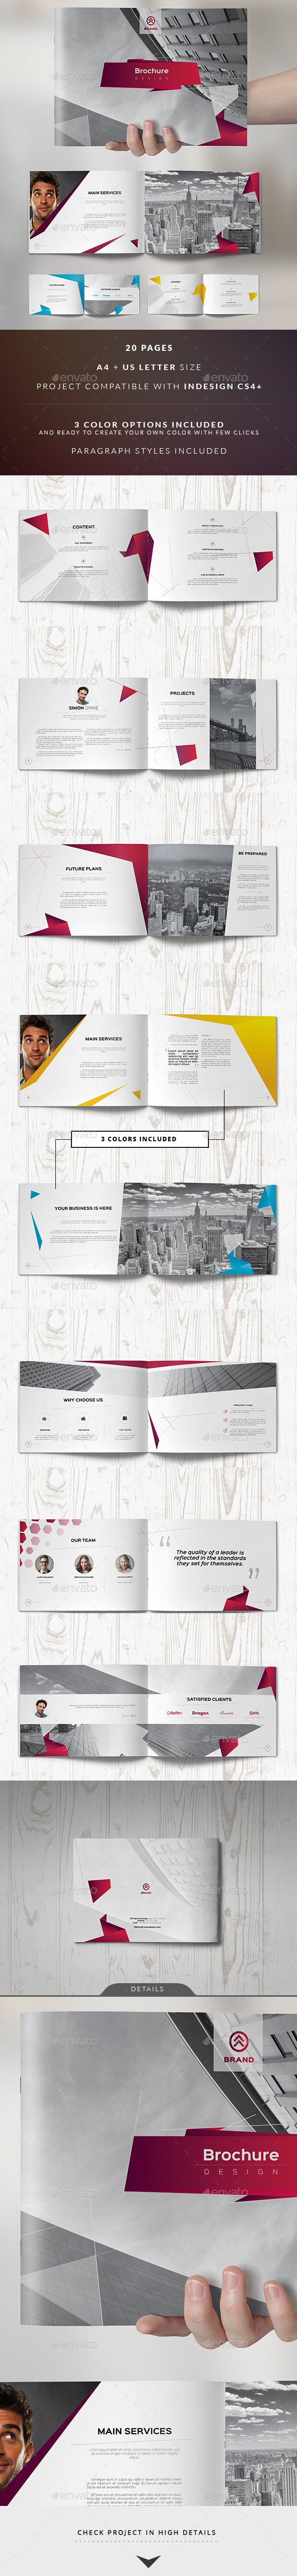 GraphicRiver Multipurpose Business Catalog Brochure 2 10717868